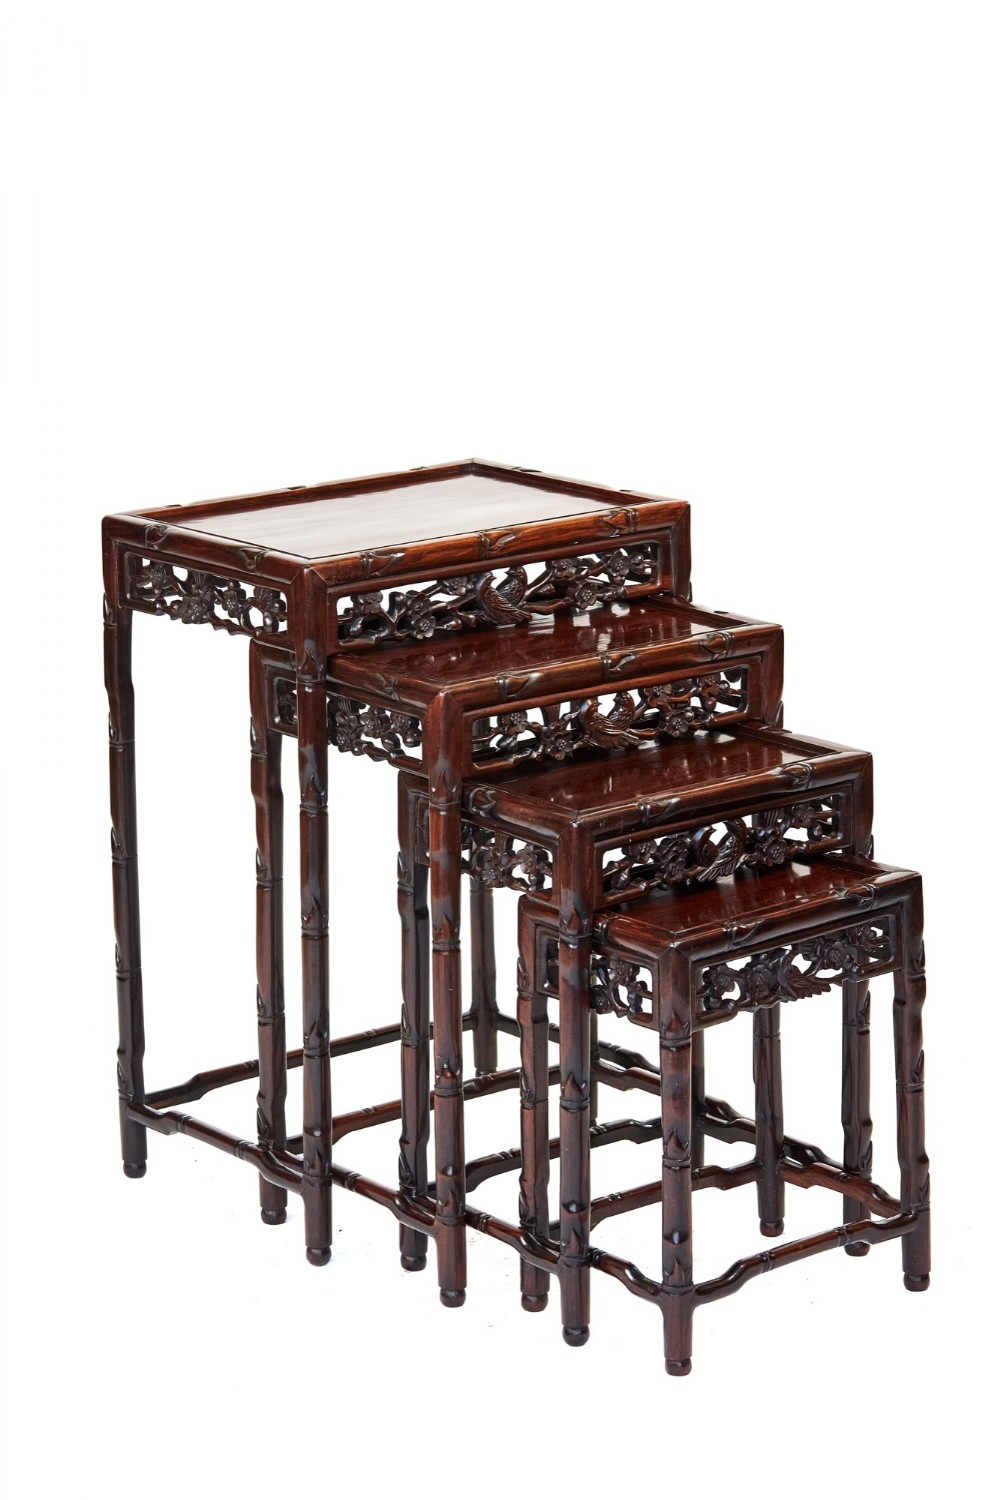 chinese hardwood carved quartetto nest tables circa 1900